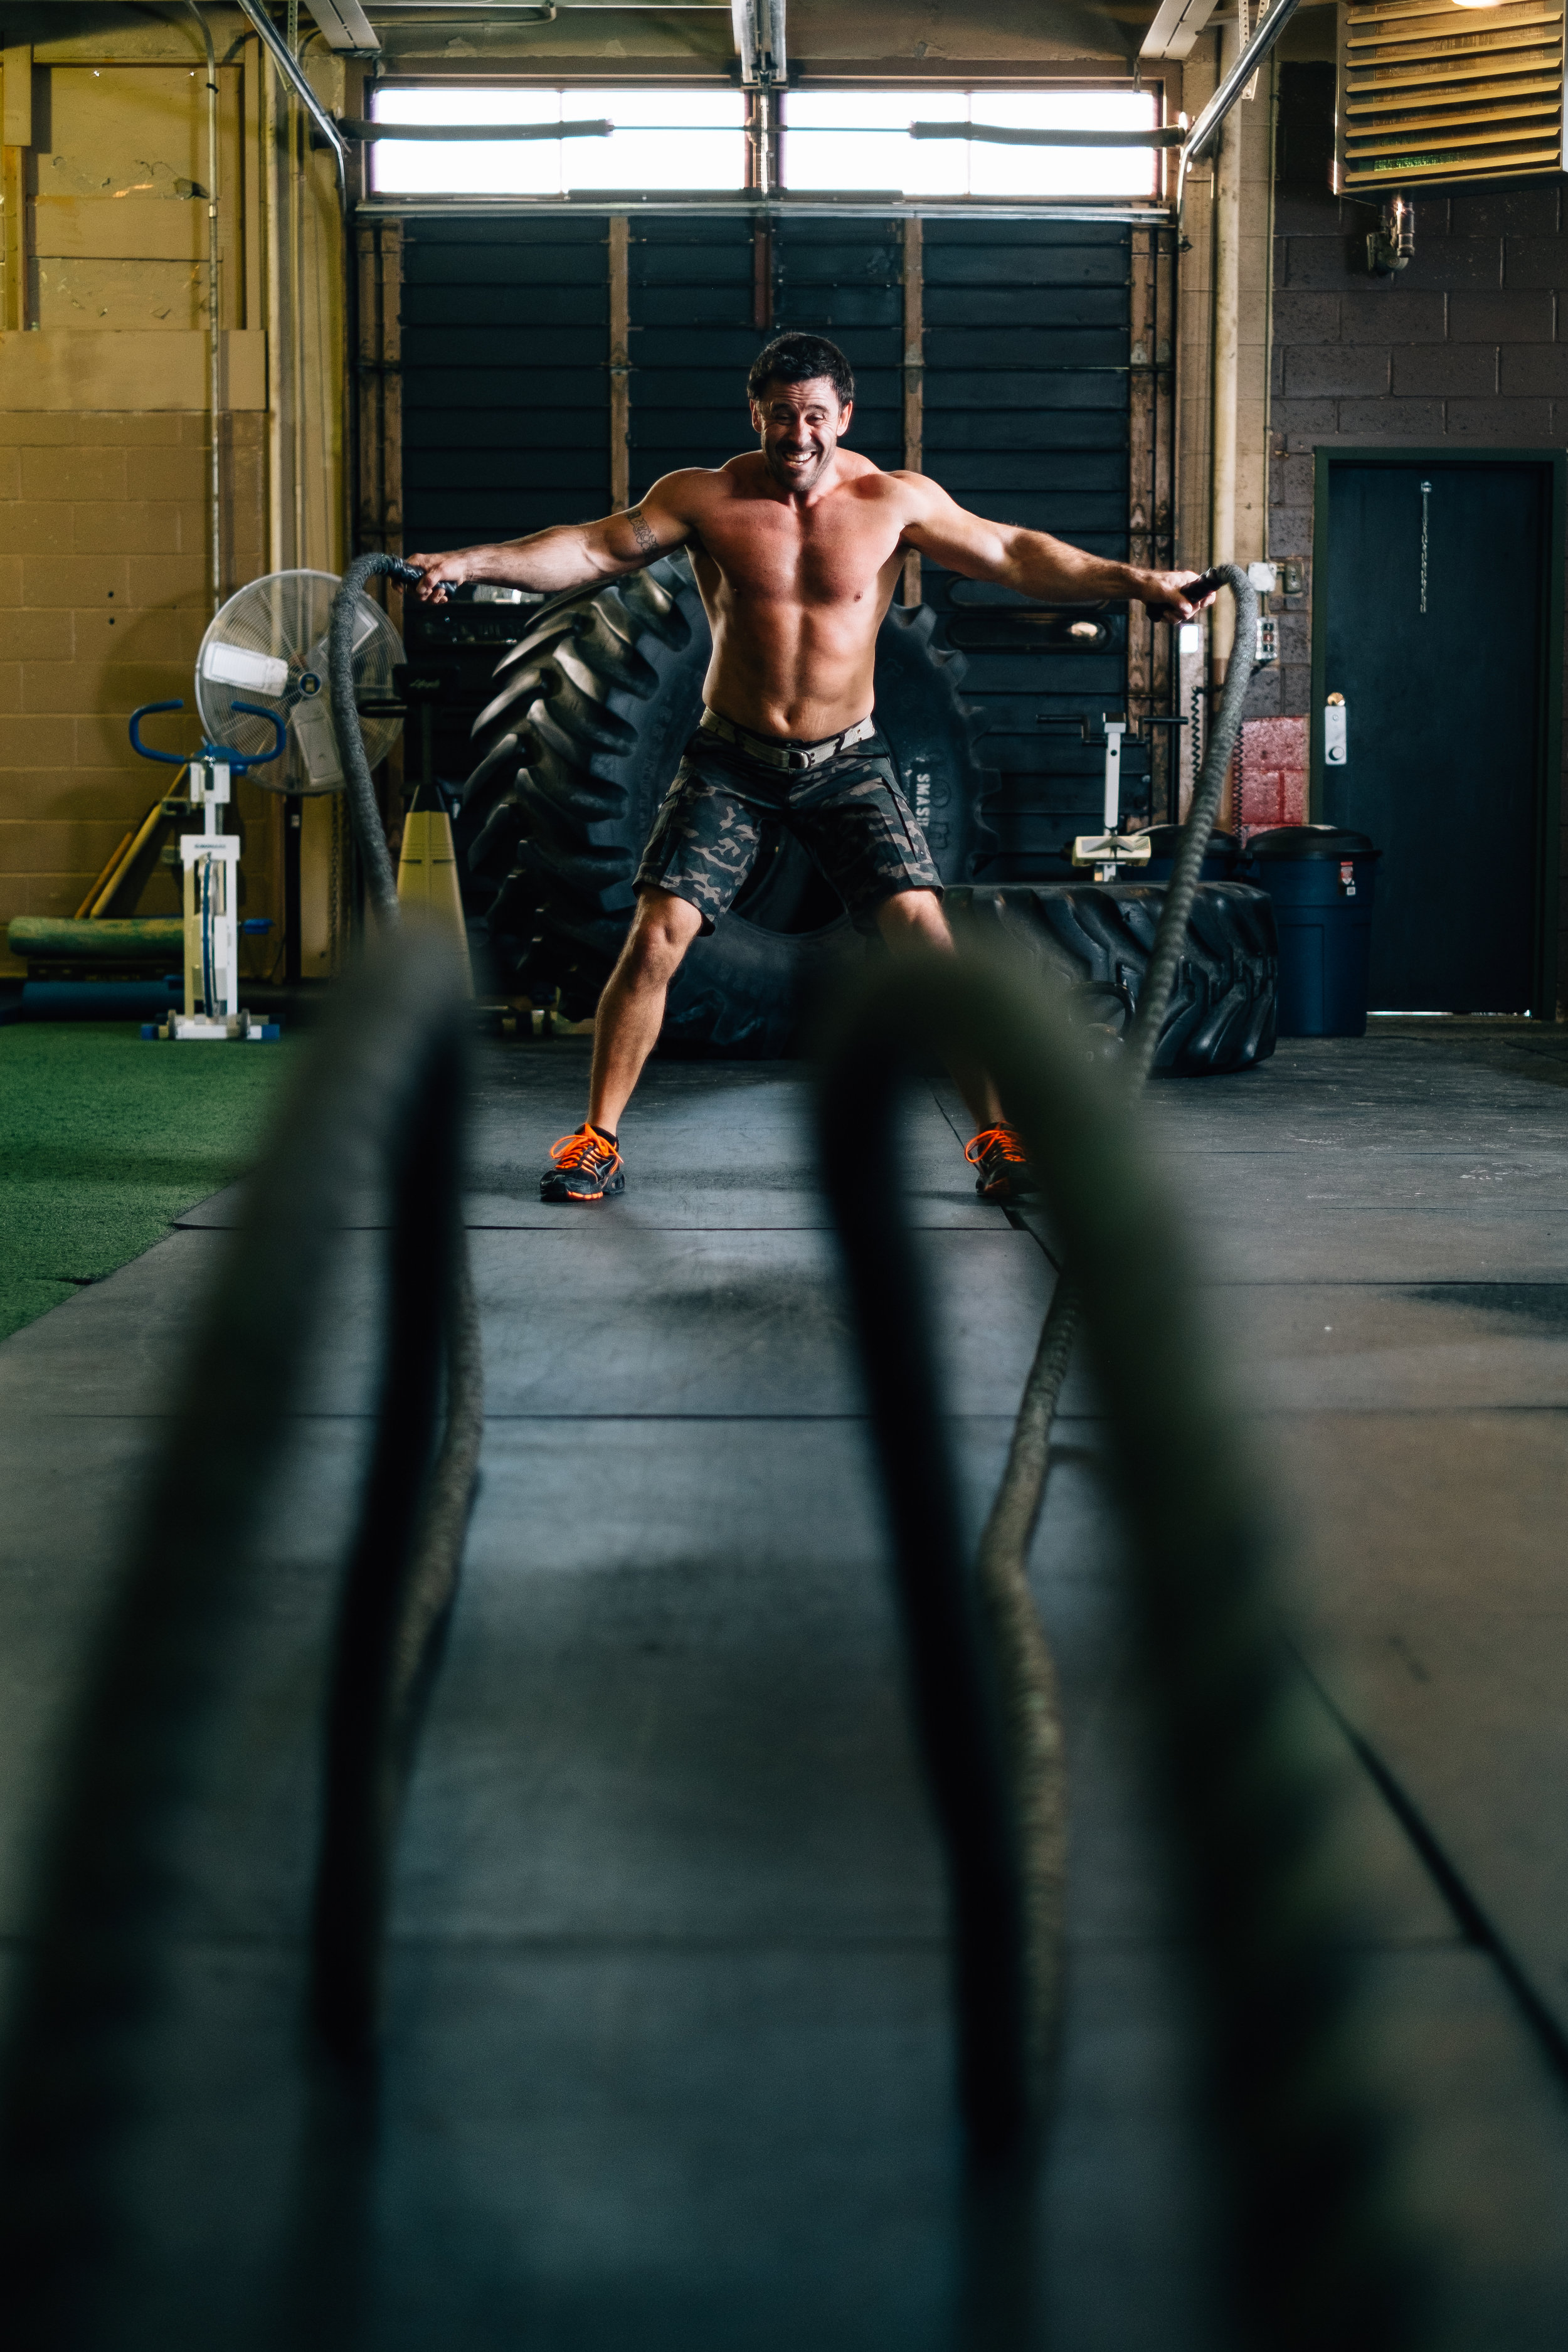 Zac Chalmers - SMASH Conditioning Owner, Group and Personal TrainerUniversity of Calgary Bachelor of KinesiologyNational Strength Conditioning Association Certified Strength Conditioning SpecialistCanadian Society for Exercise Physiology Certified Personal TrainerTrain with Zac